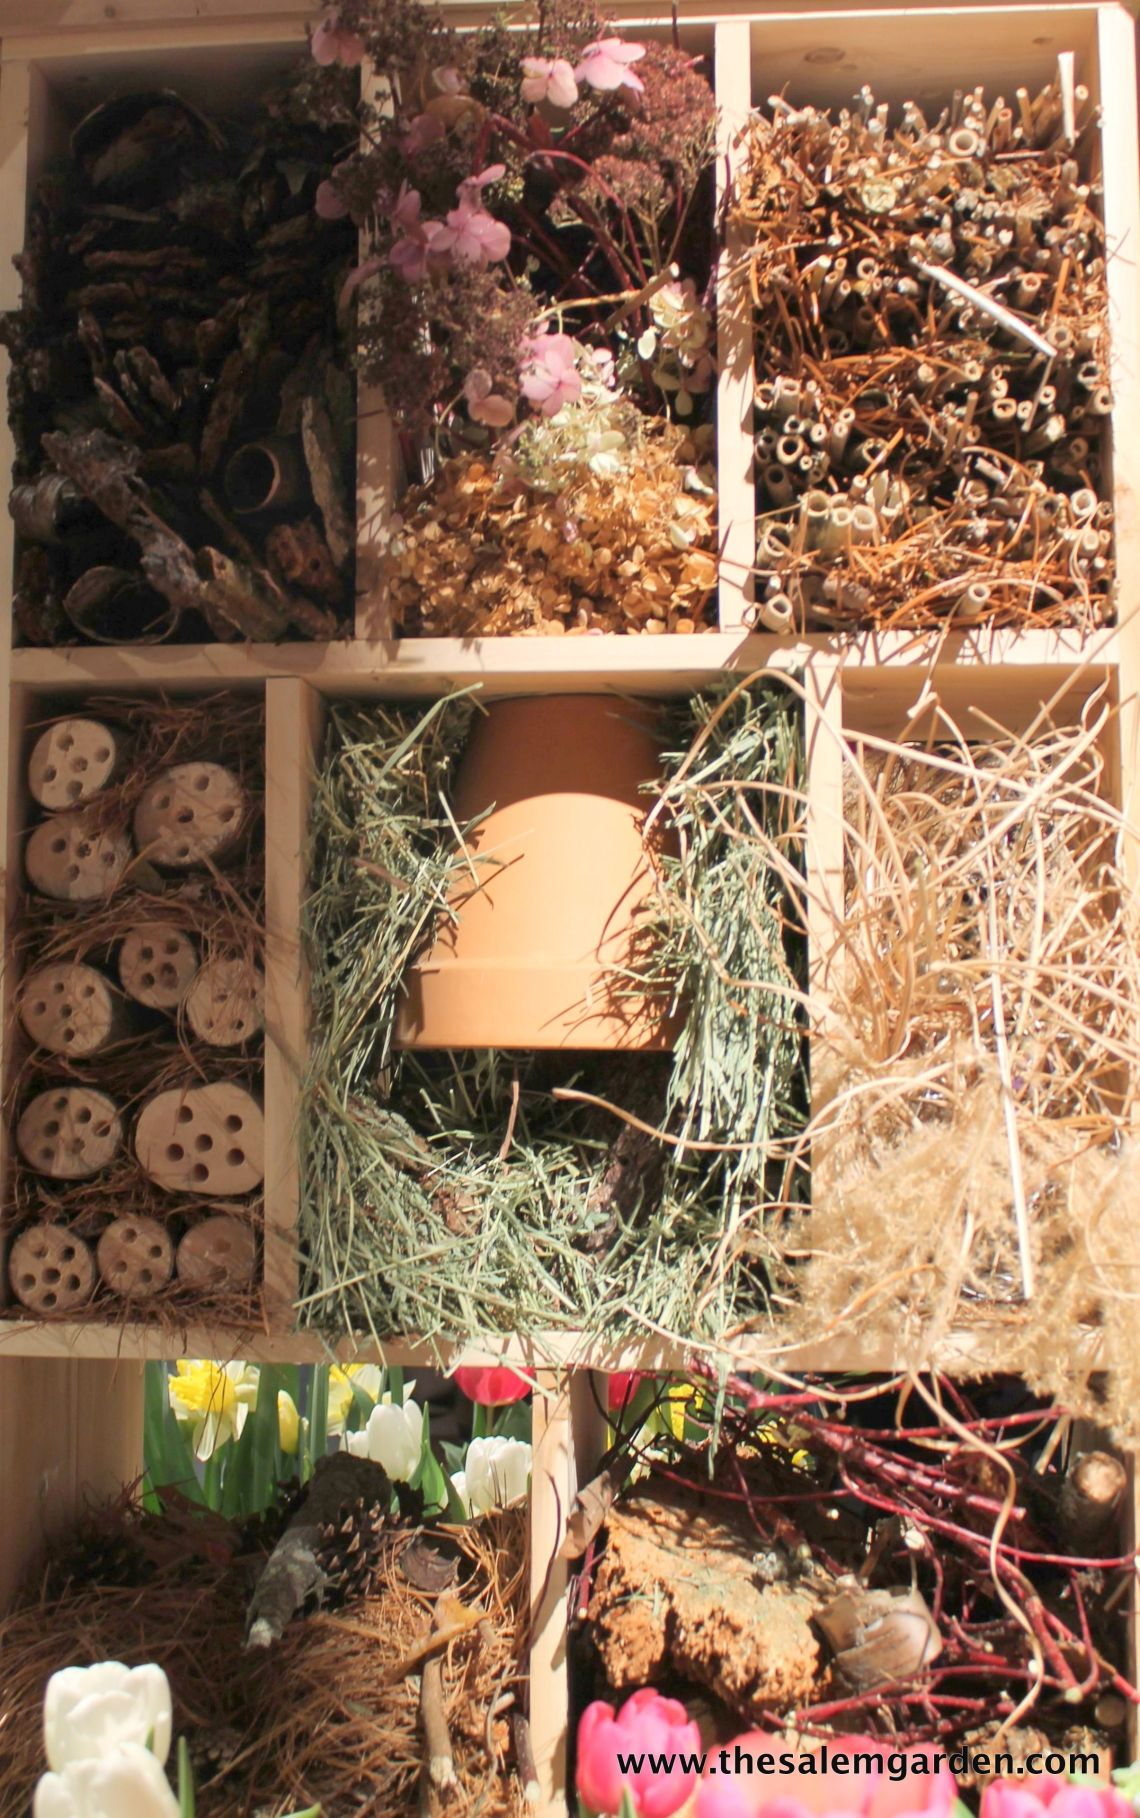 I must have a bug hotel this year!